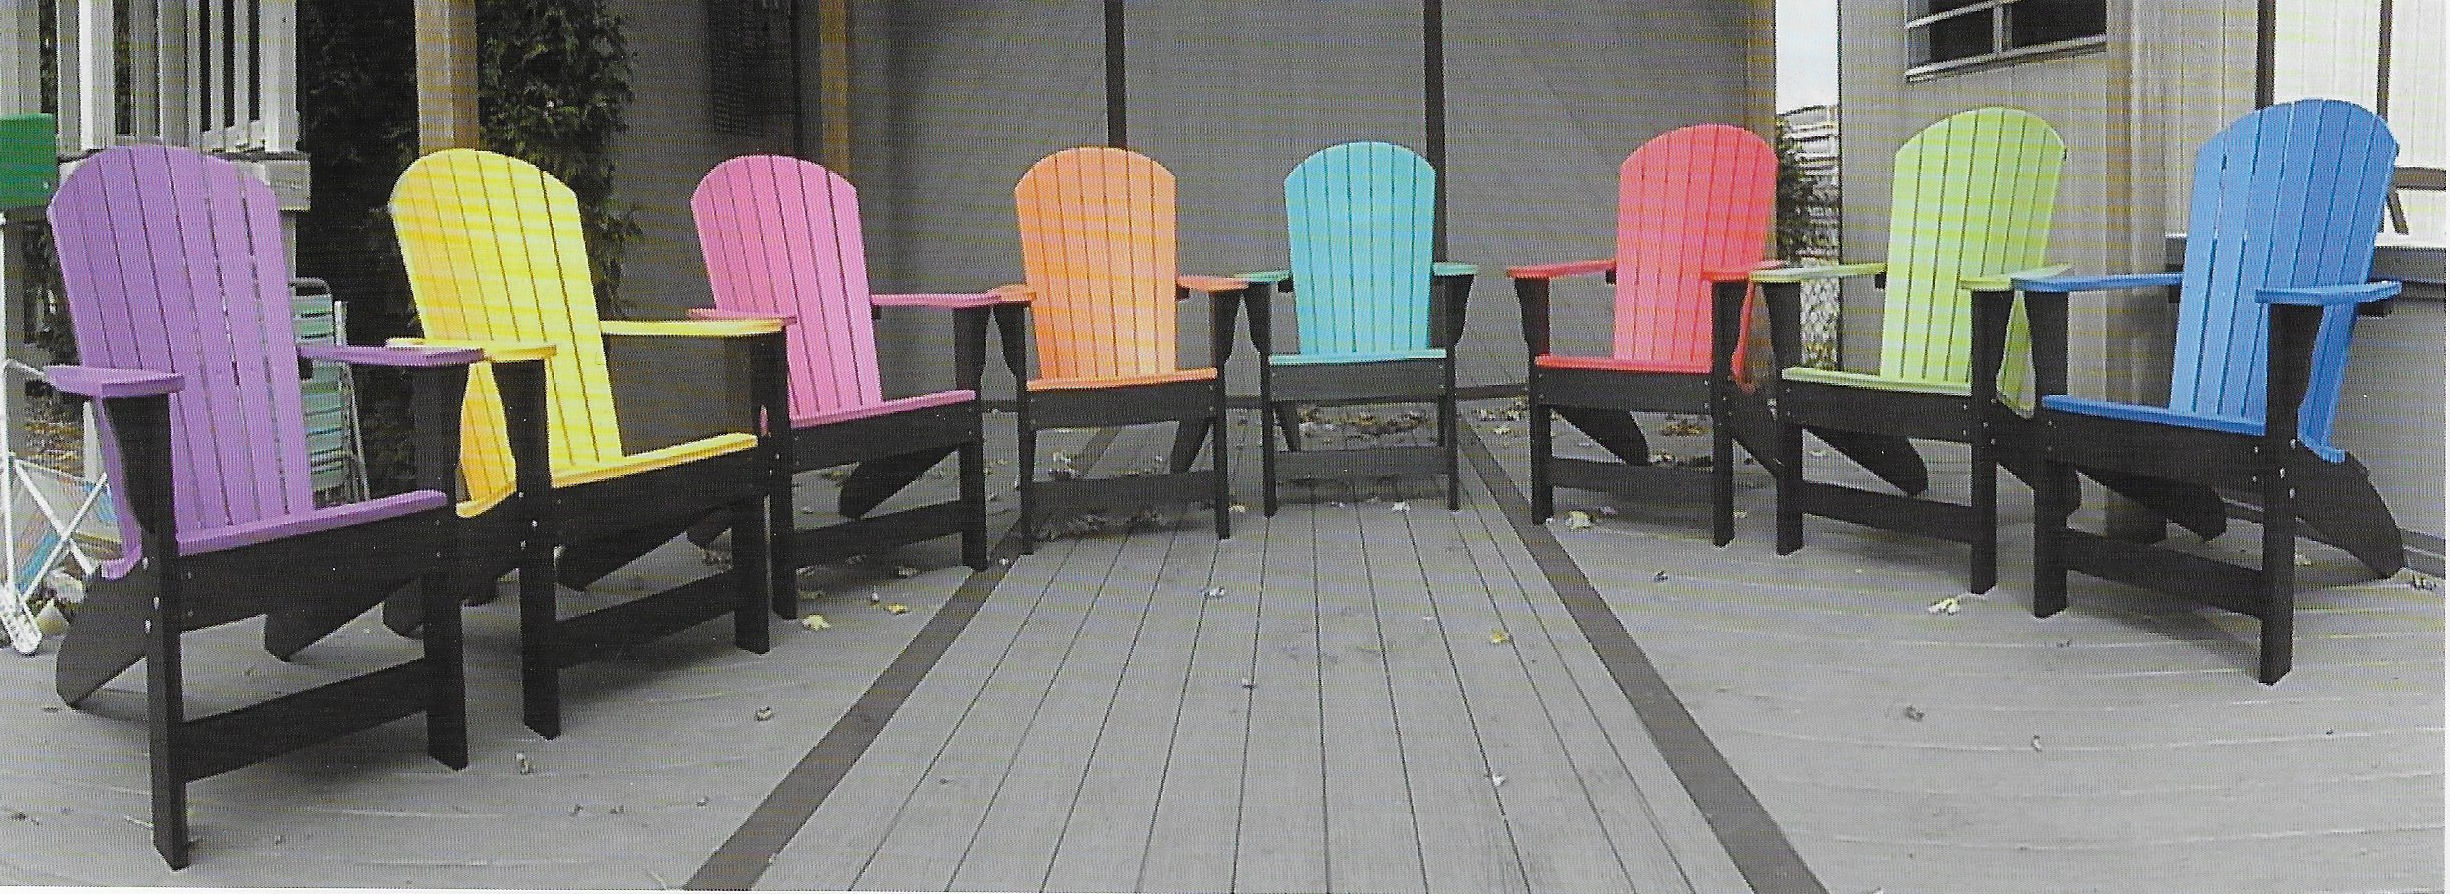 adirondack-chairs-colors-mm-lawn-furniture-2.jpg